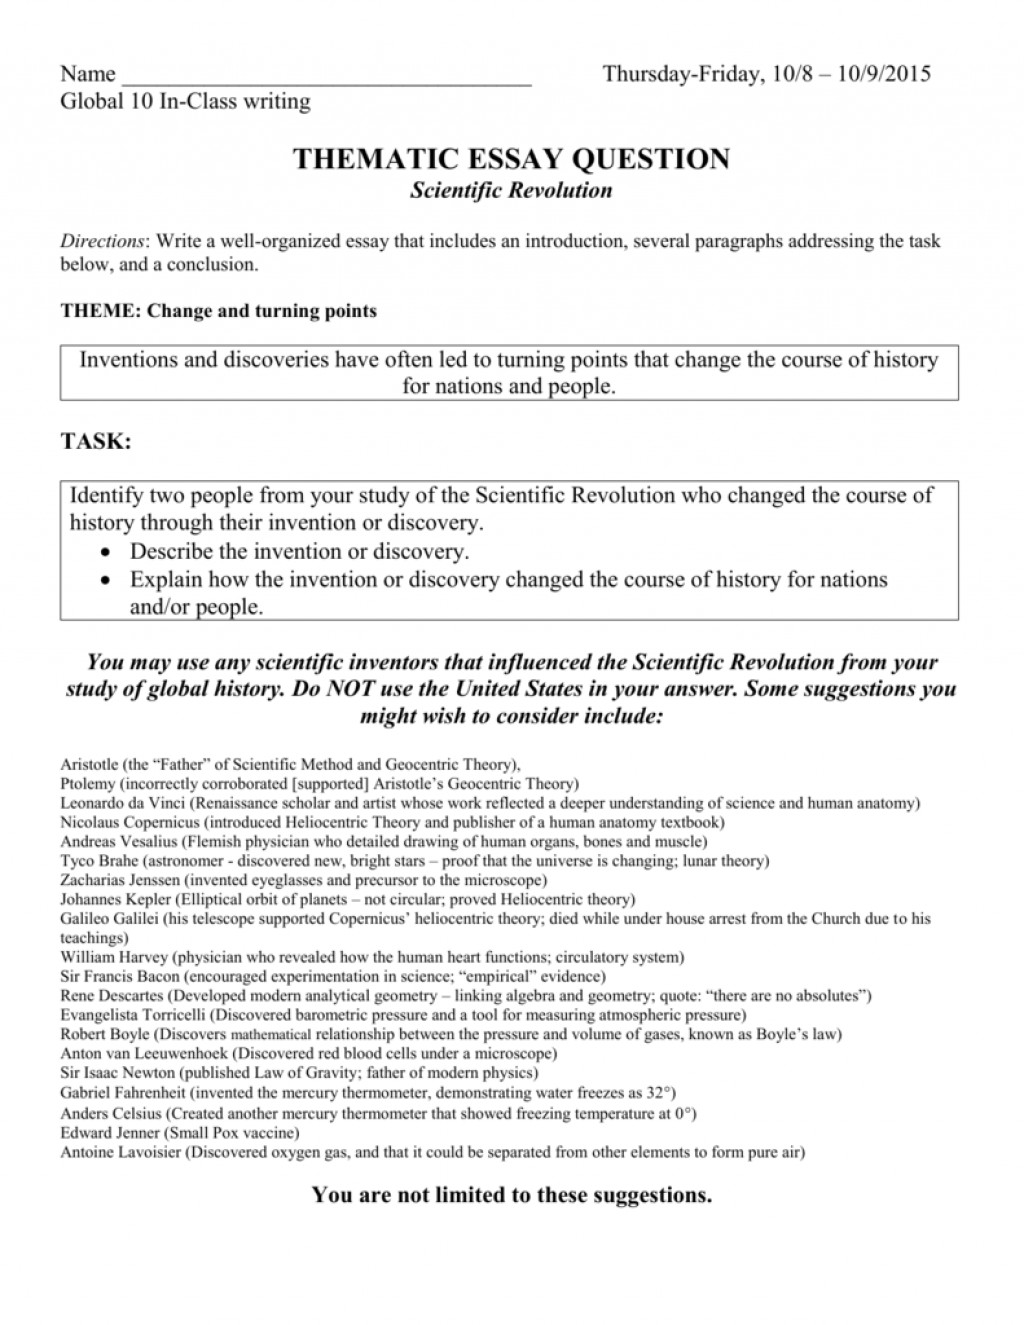 002 Thematic Essay Example 007118361 1 Fearsome Photo Examples Rubric Analysis Template Large